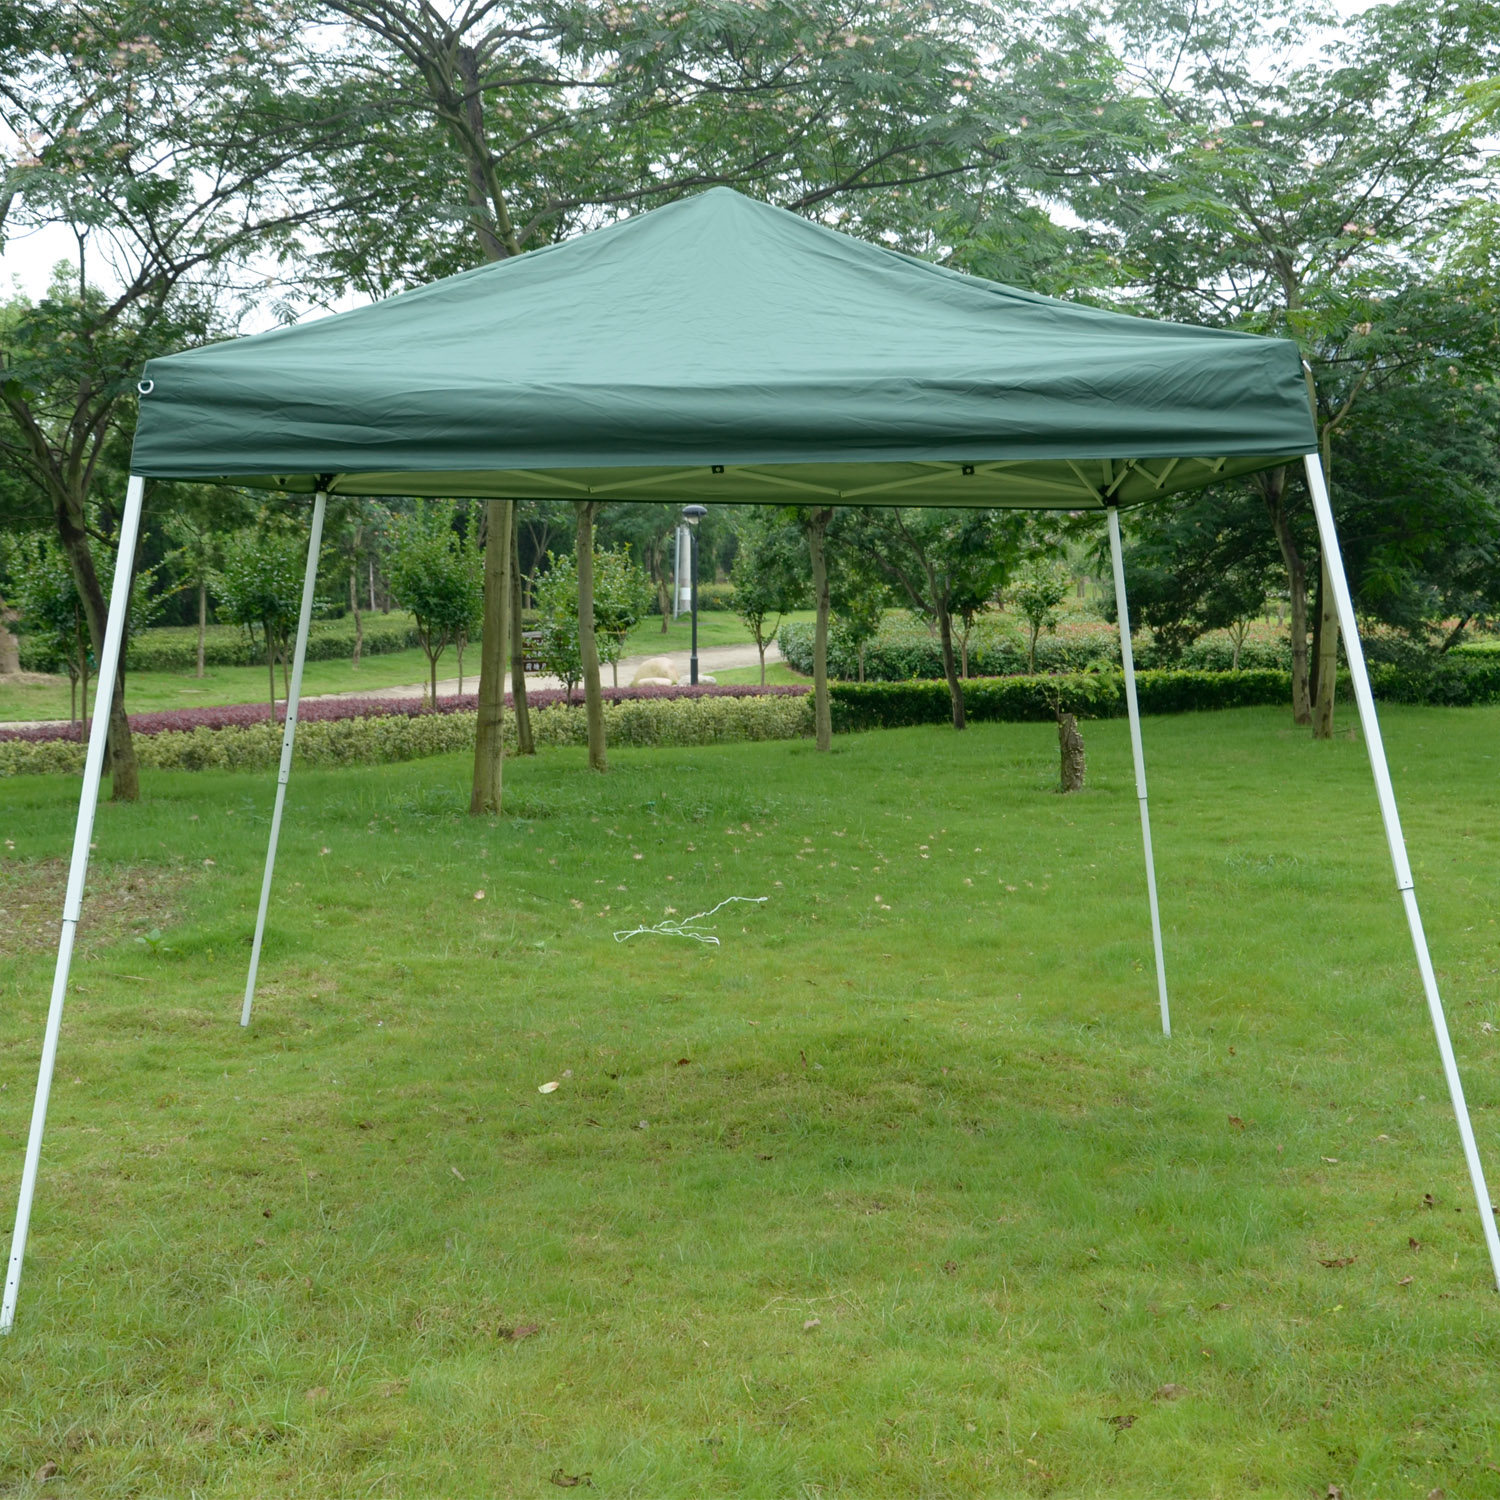 Outsunny 10' x 10' Slant Leg Pop Up Canopy Tent - Green